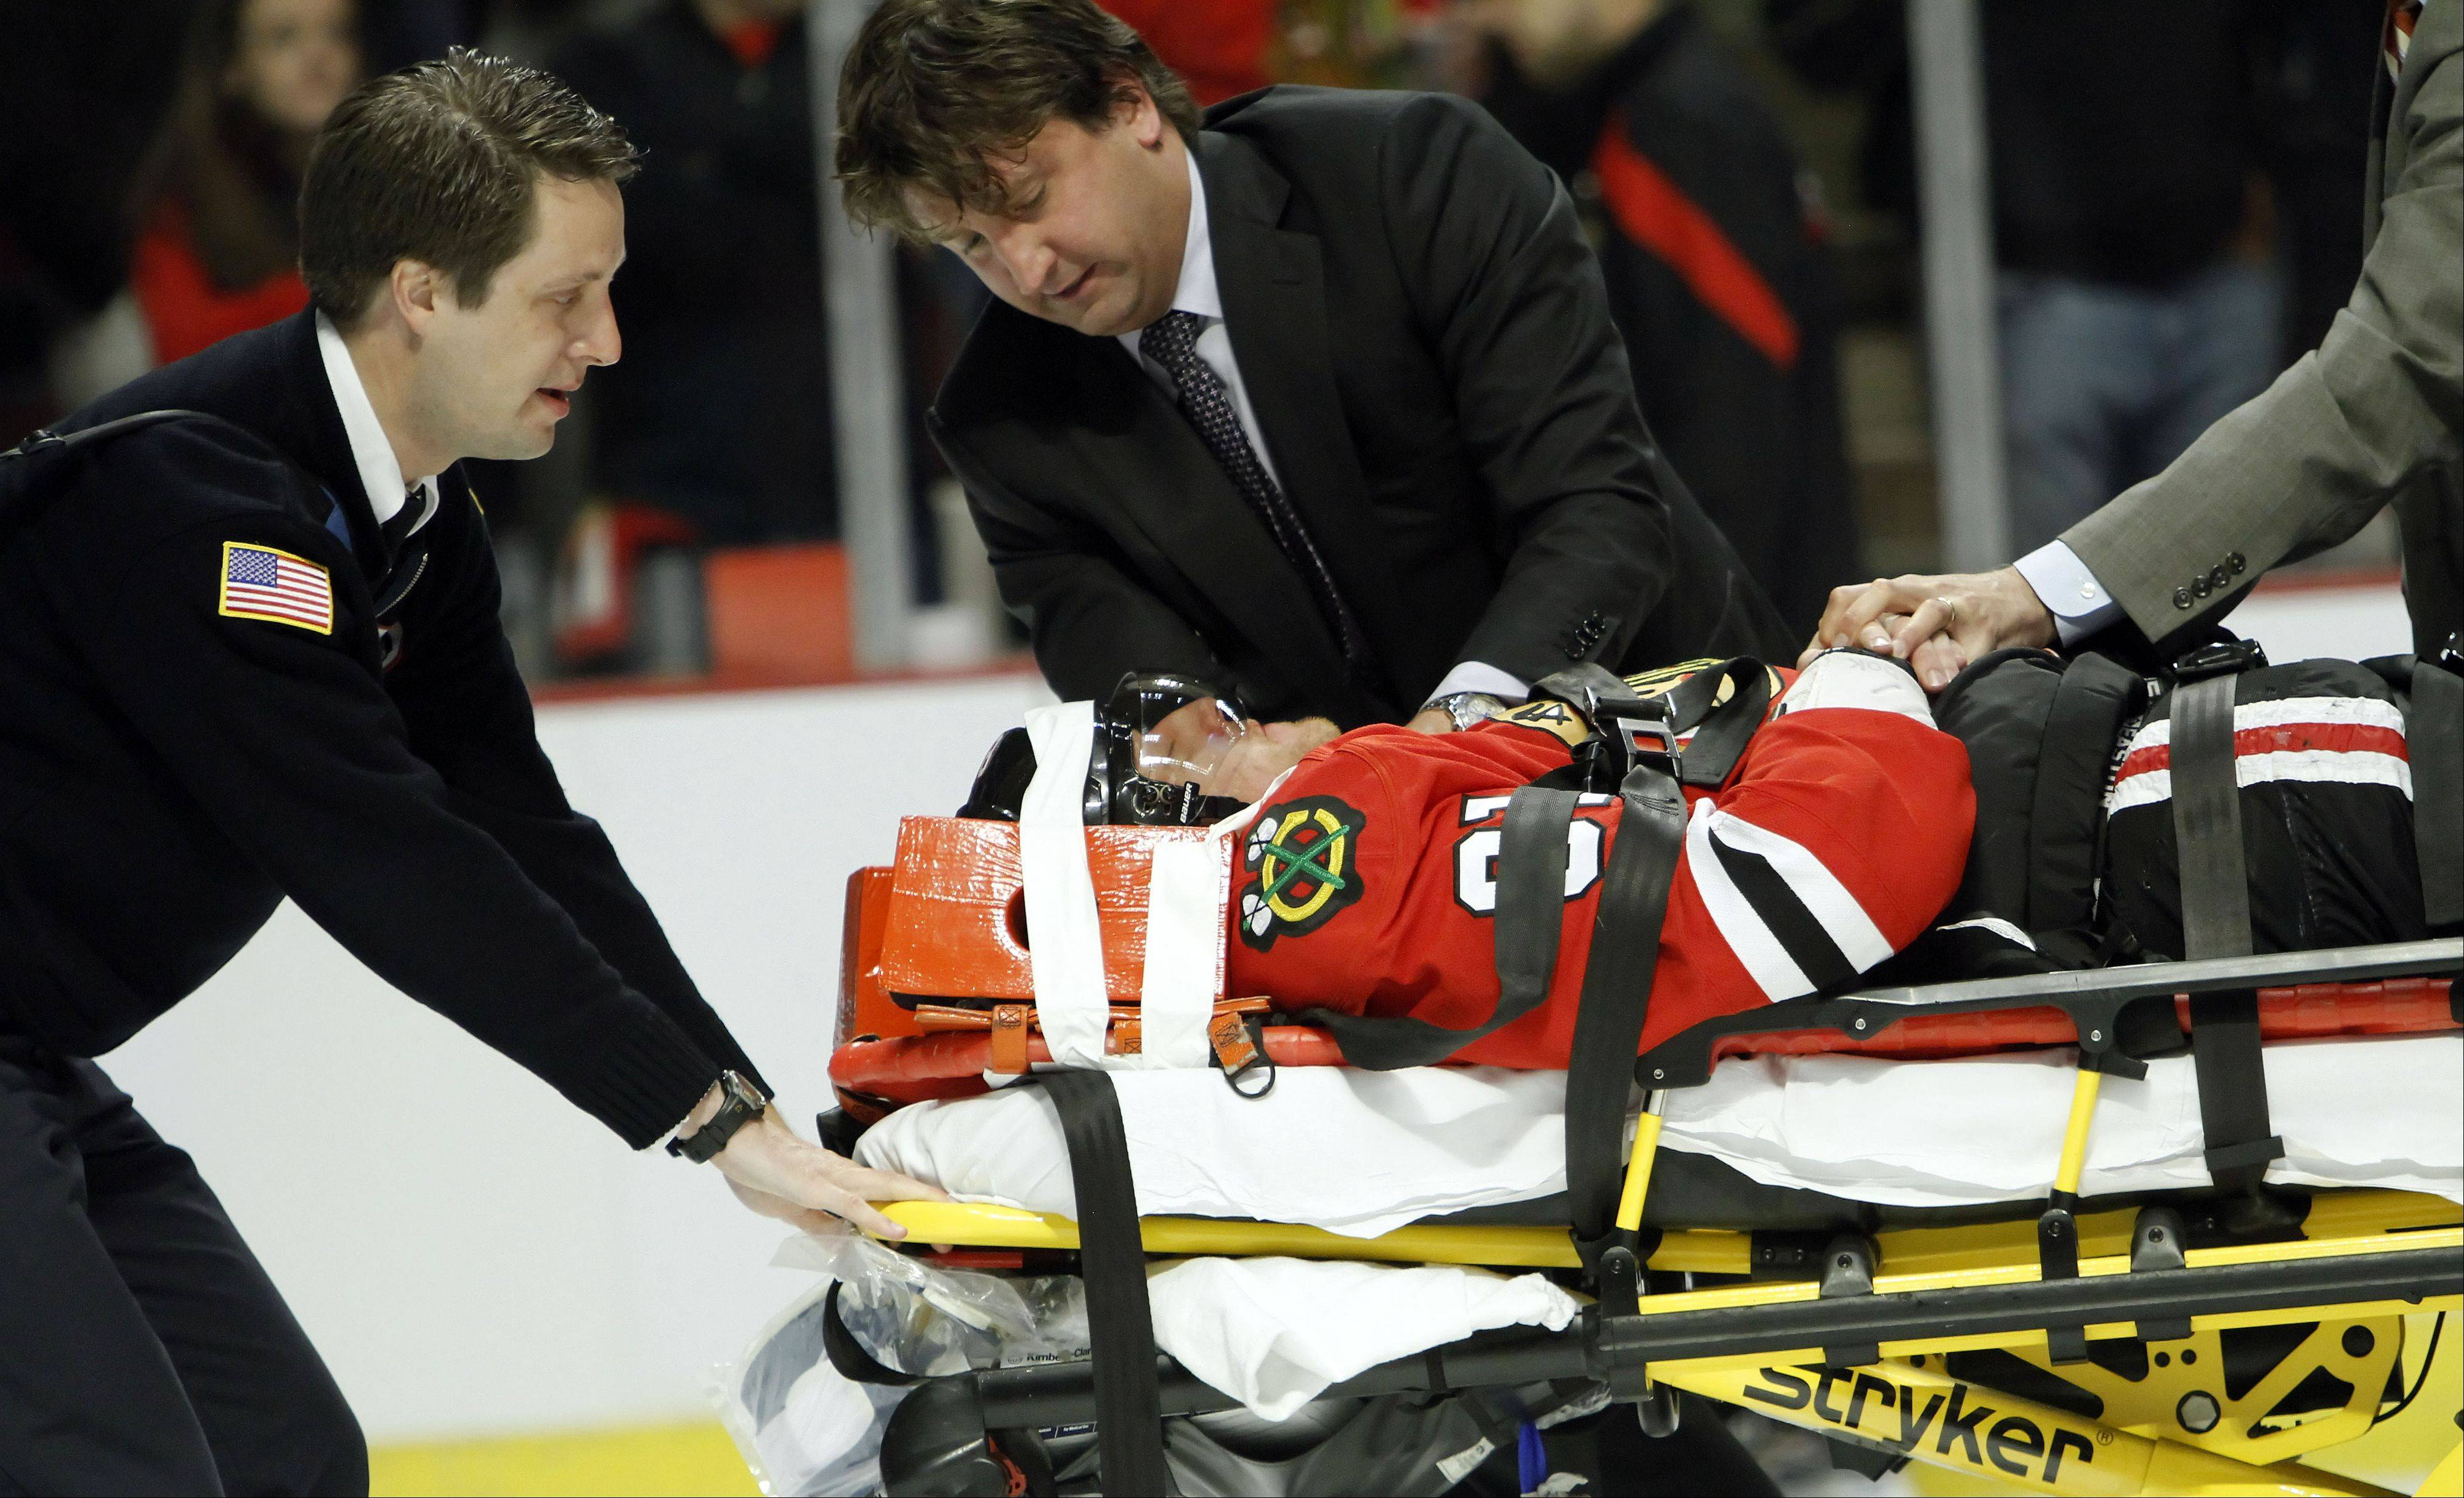 Dr. Michael Terry tends to the Blackhawks' Marian Hossa as he is taken off the ice on a stretcher during Game 3 of a playoff series against Phoenix in 2012. Hossa suffered a concussion after a hit by Raffi Torres. Terry also operated on Hossa's shoulder in 2010 and Hossa says it feels even better than before.